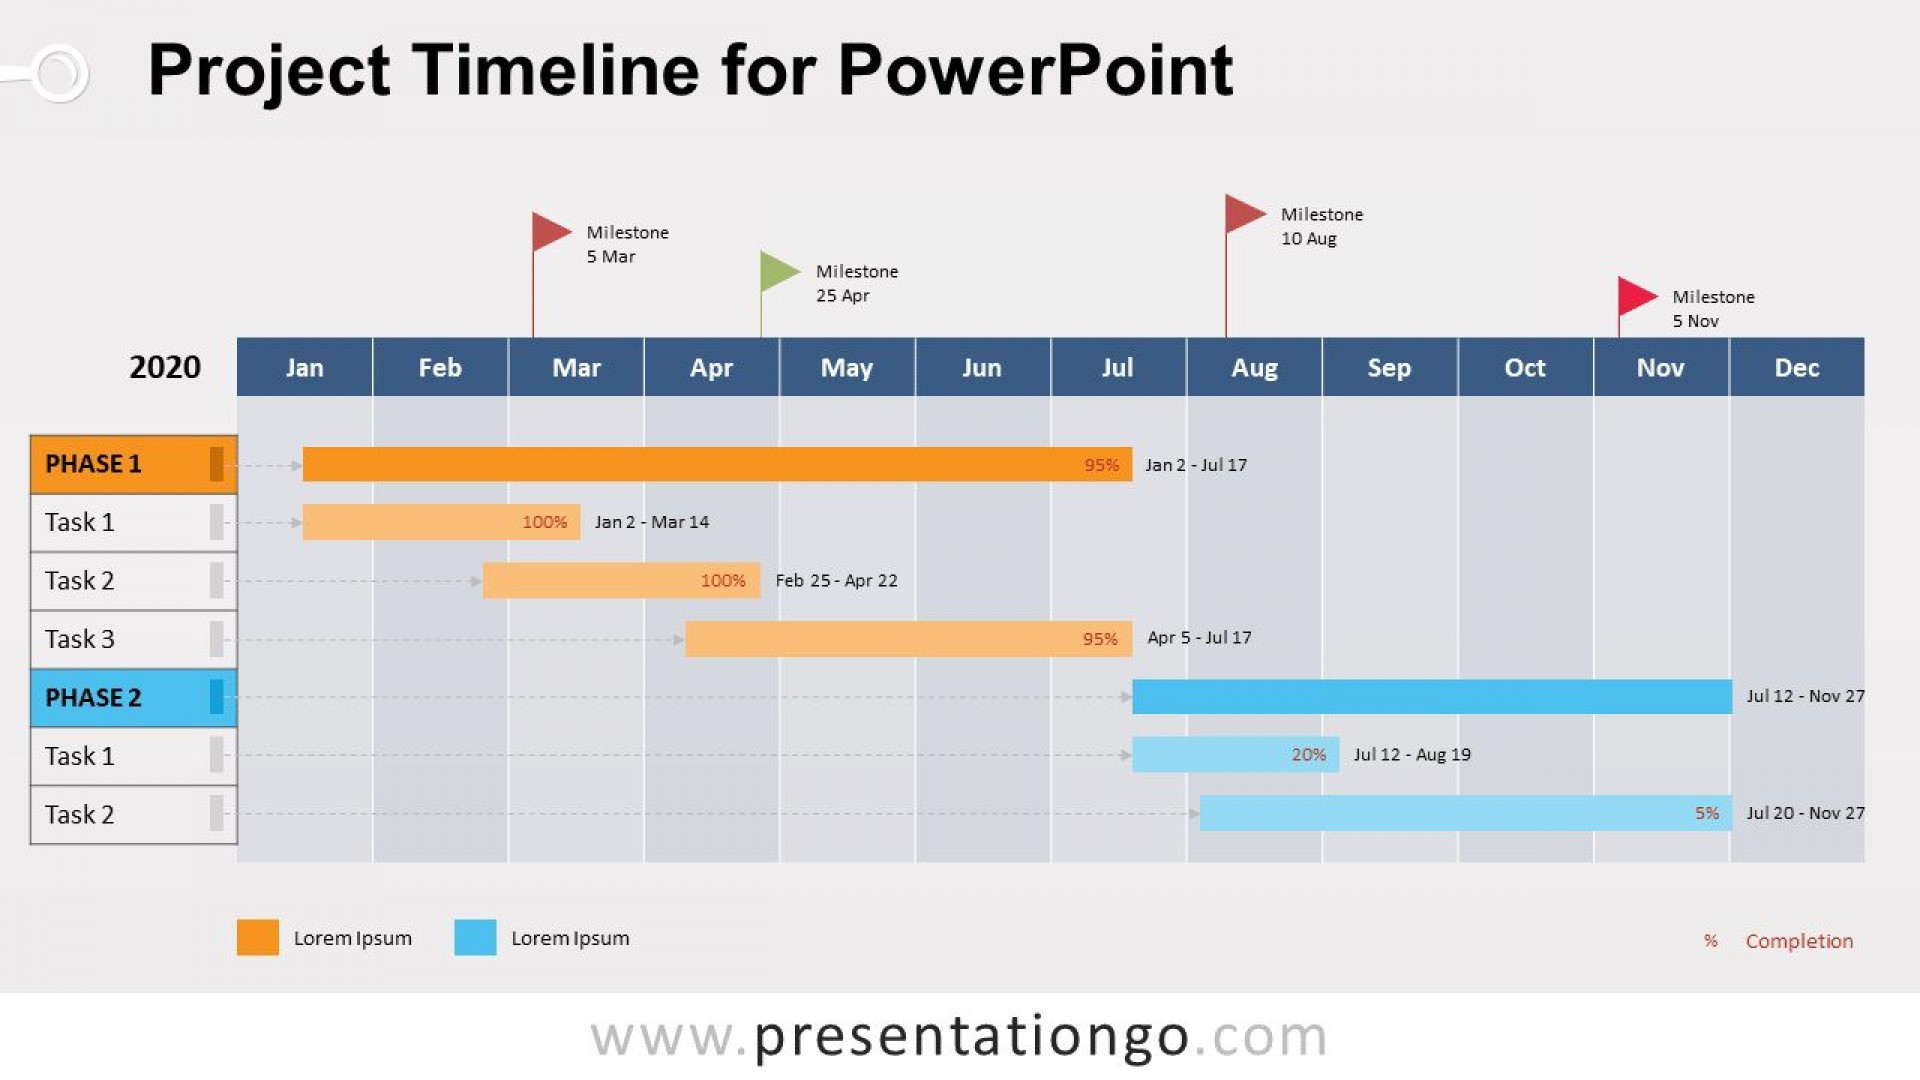 008 Incredible Project Timeline Template Powerpoint Highest Quality  M Ppt Free Download1920